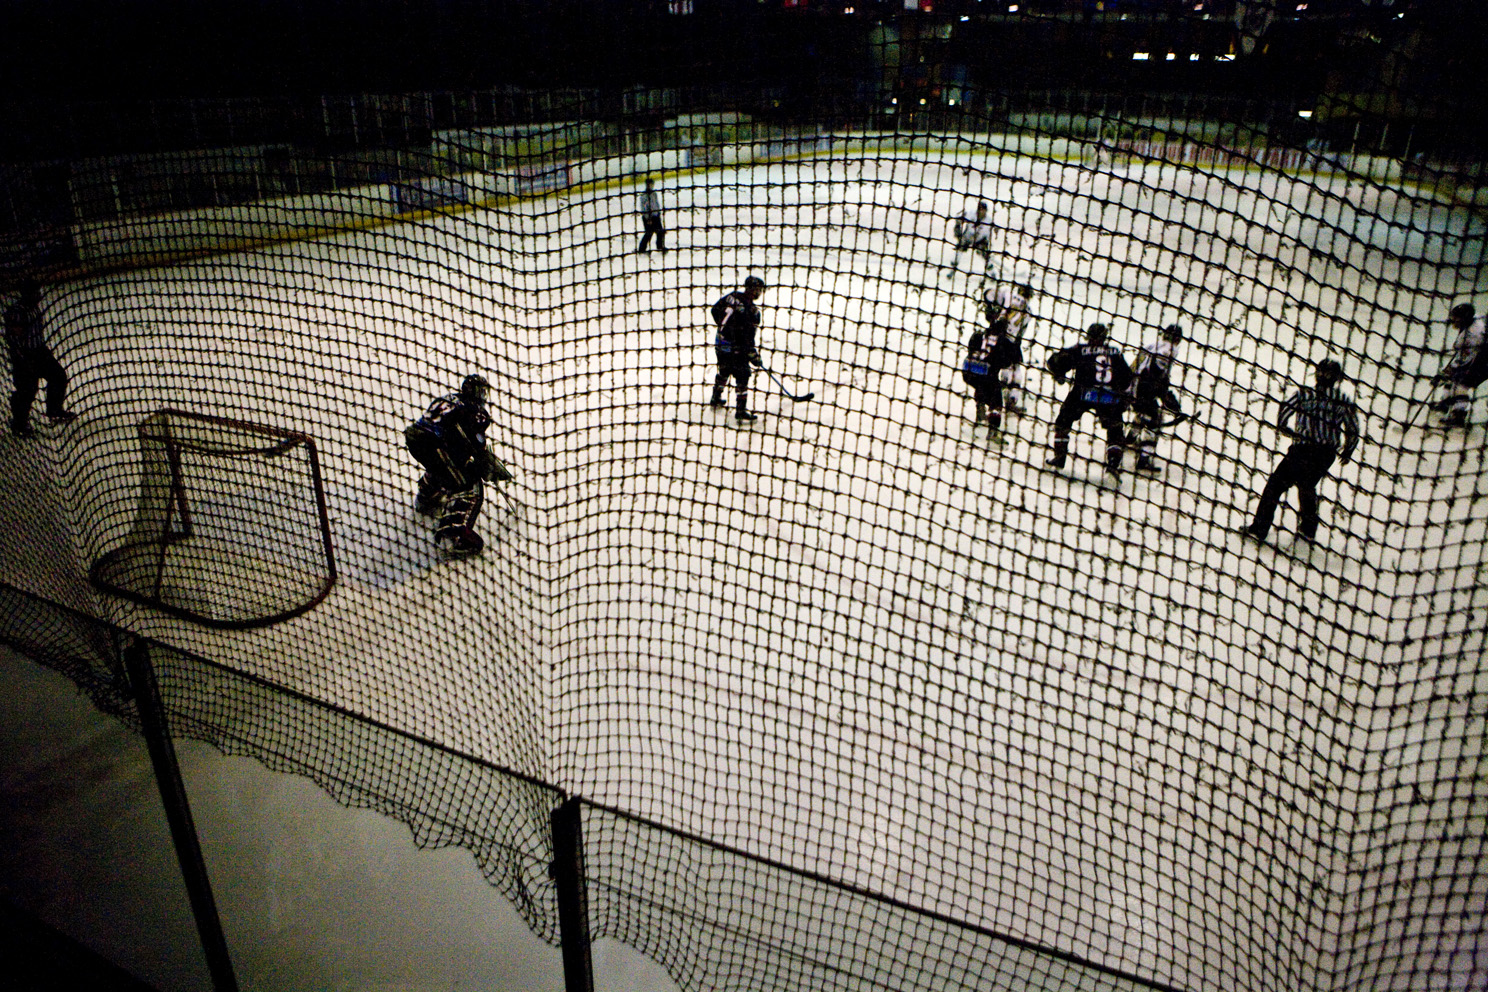 Game day at Planet Ice, watching the Milton Keynes Lightning Ice-Hockey team.